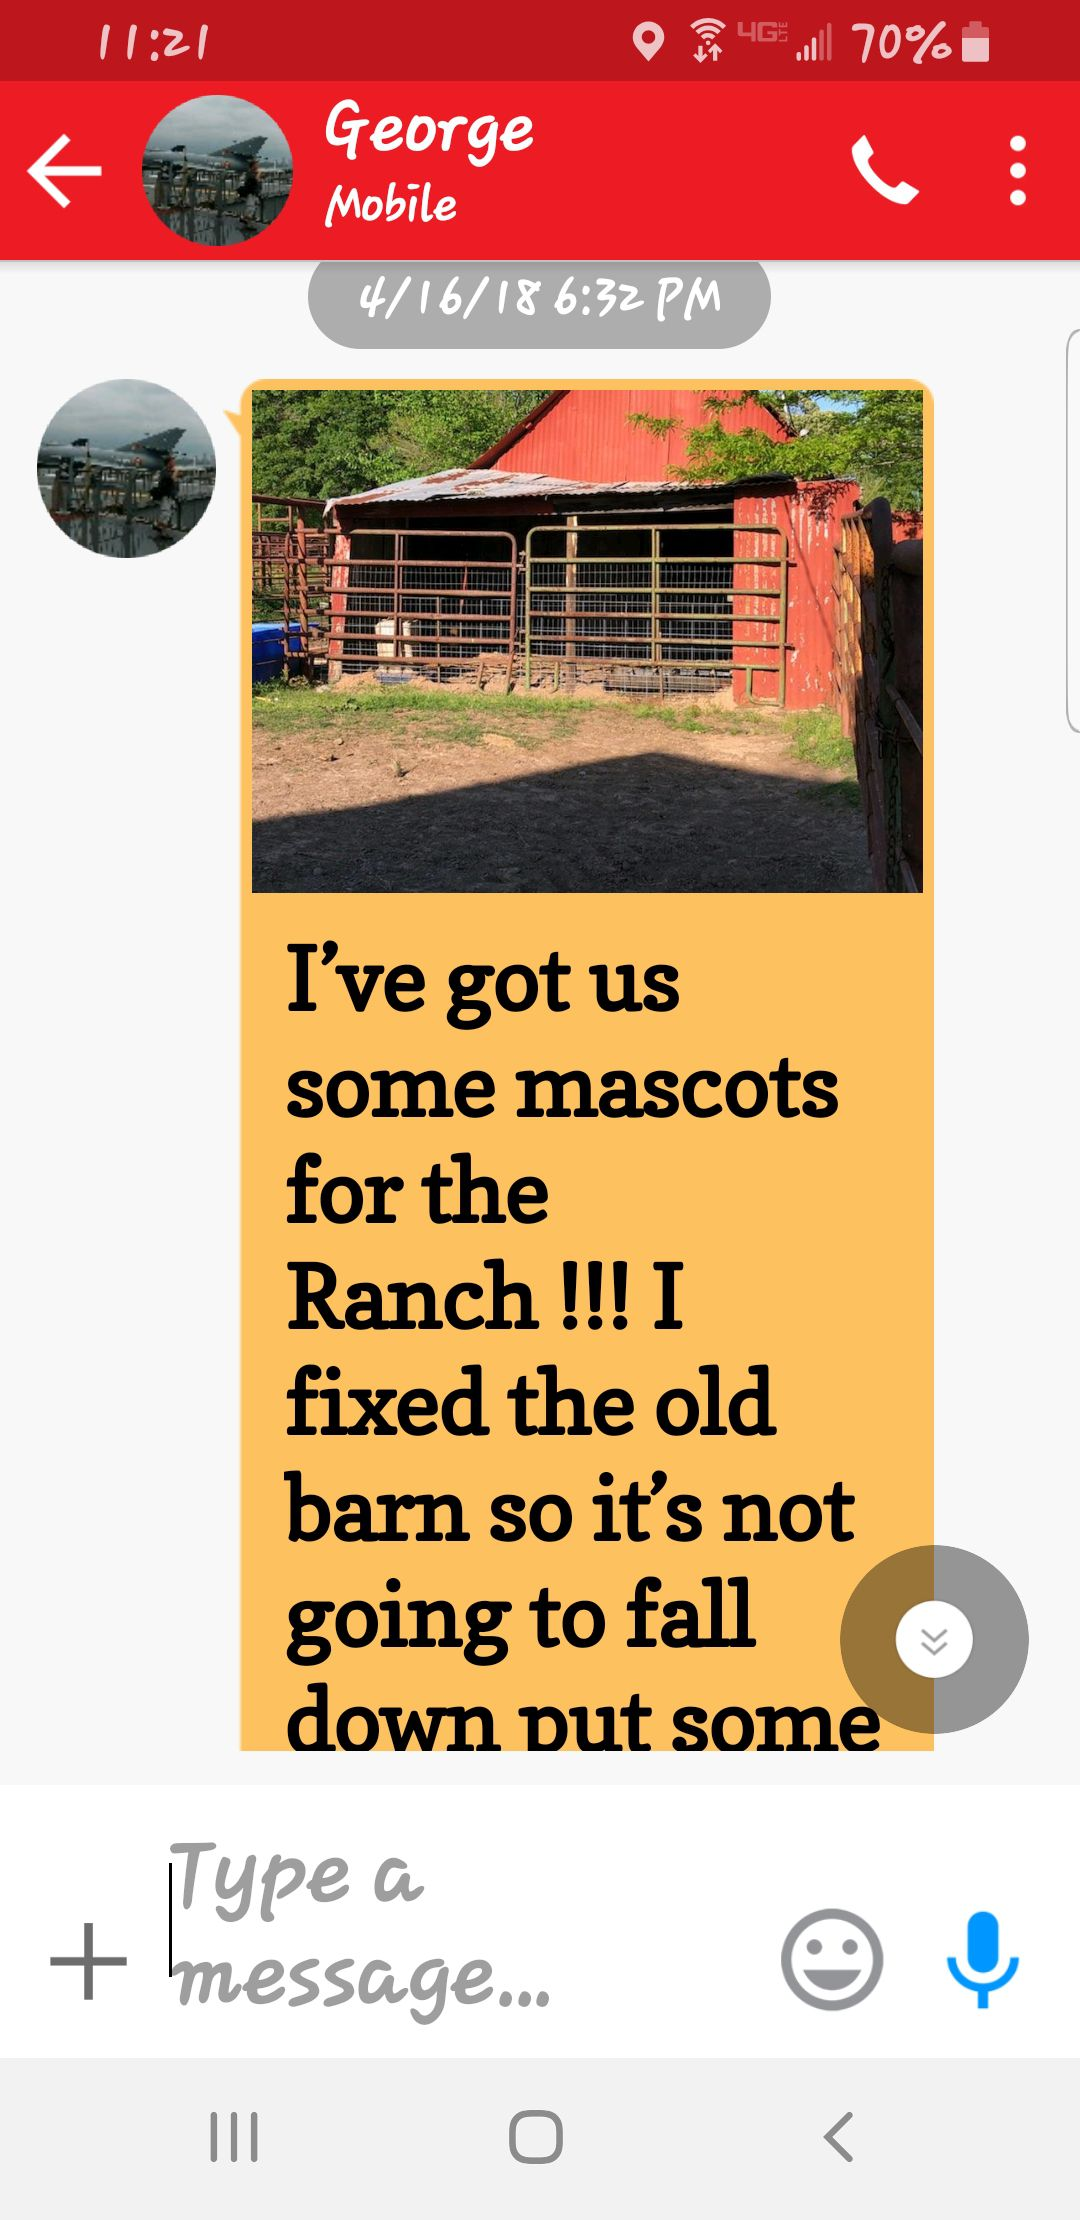 Darrin Gowin, who was taking care of the Chronis property, texted George Chronis that he stocked a barn with wild pigs.